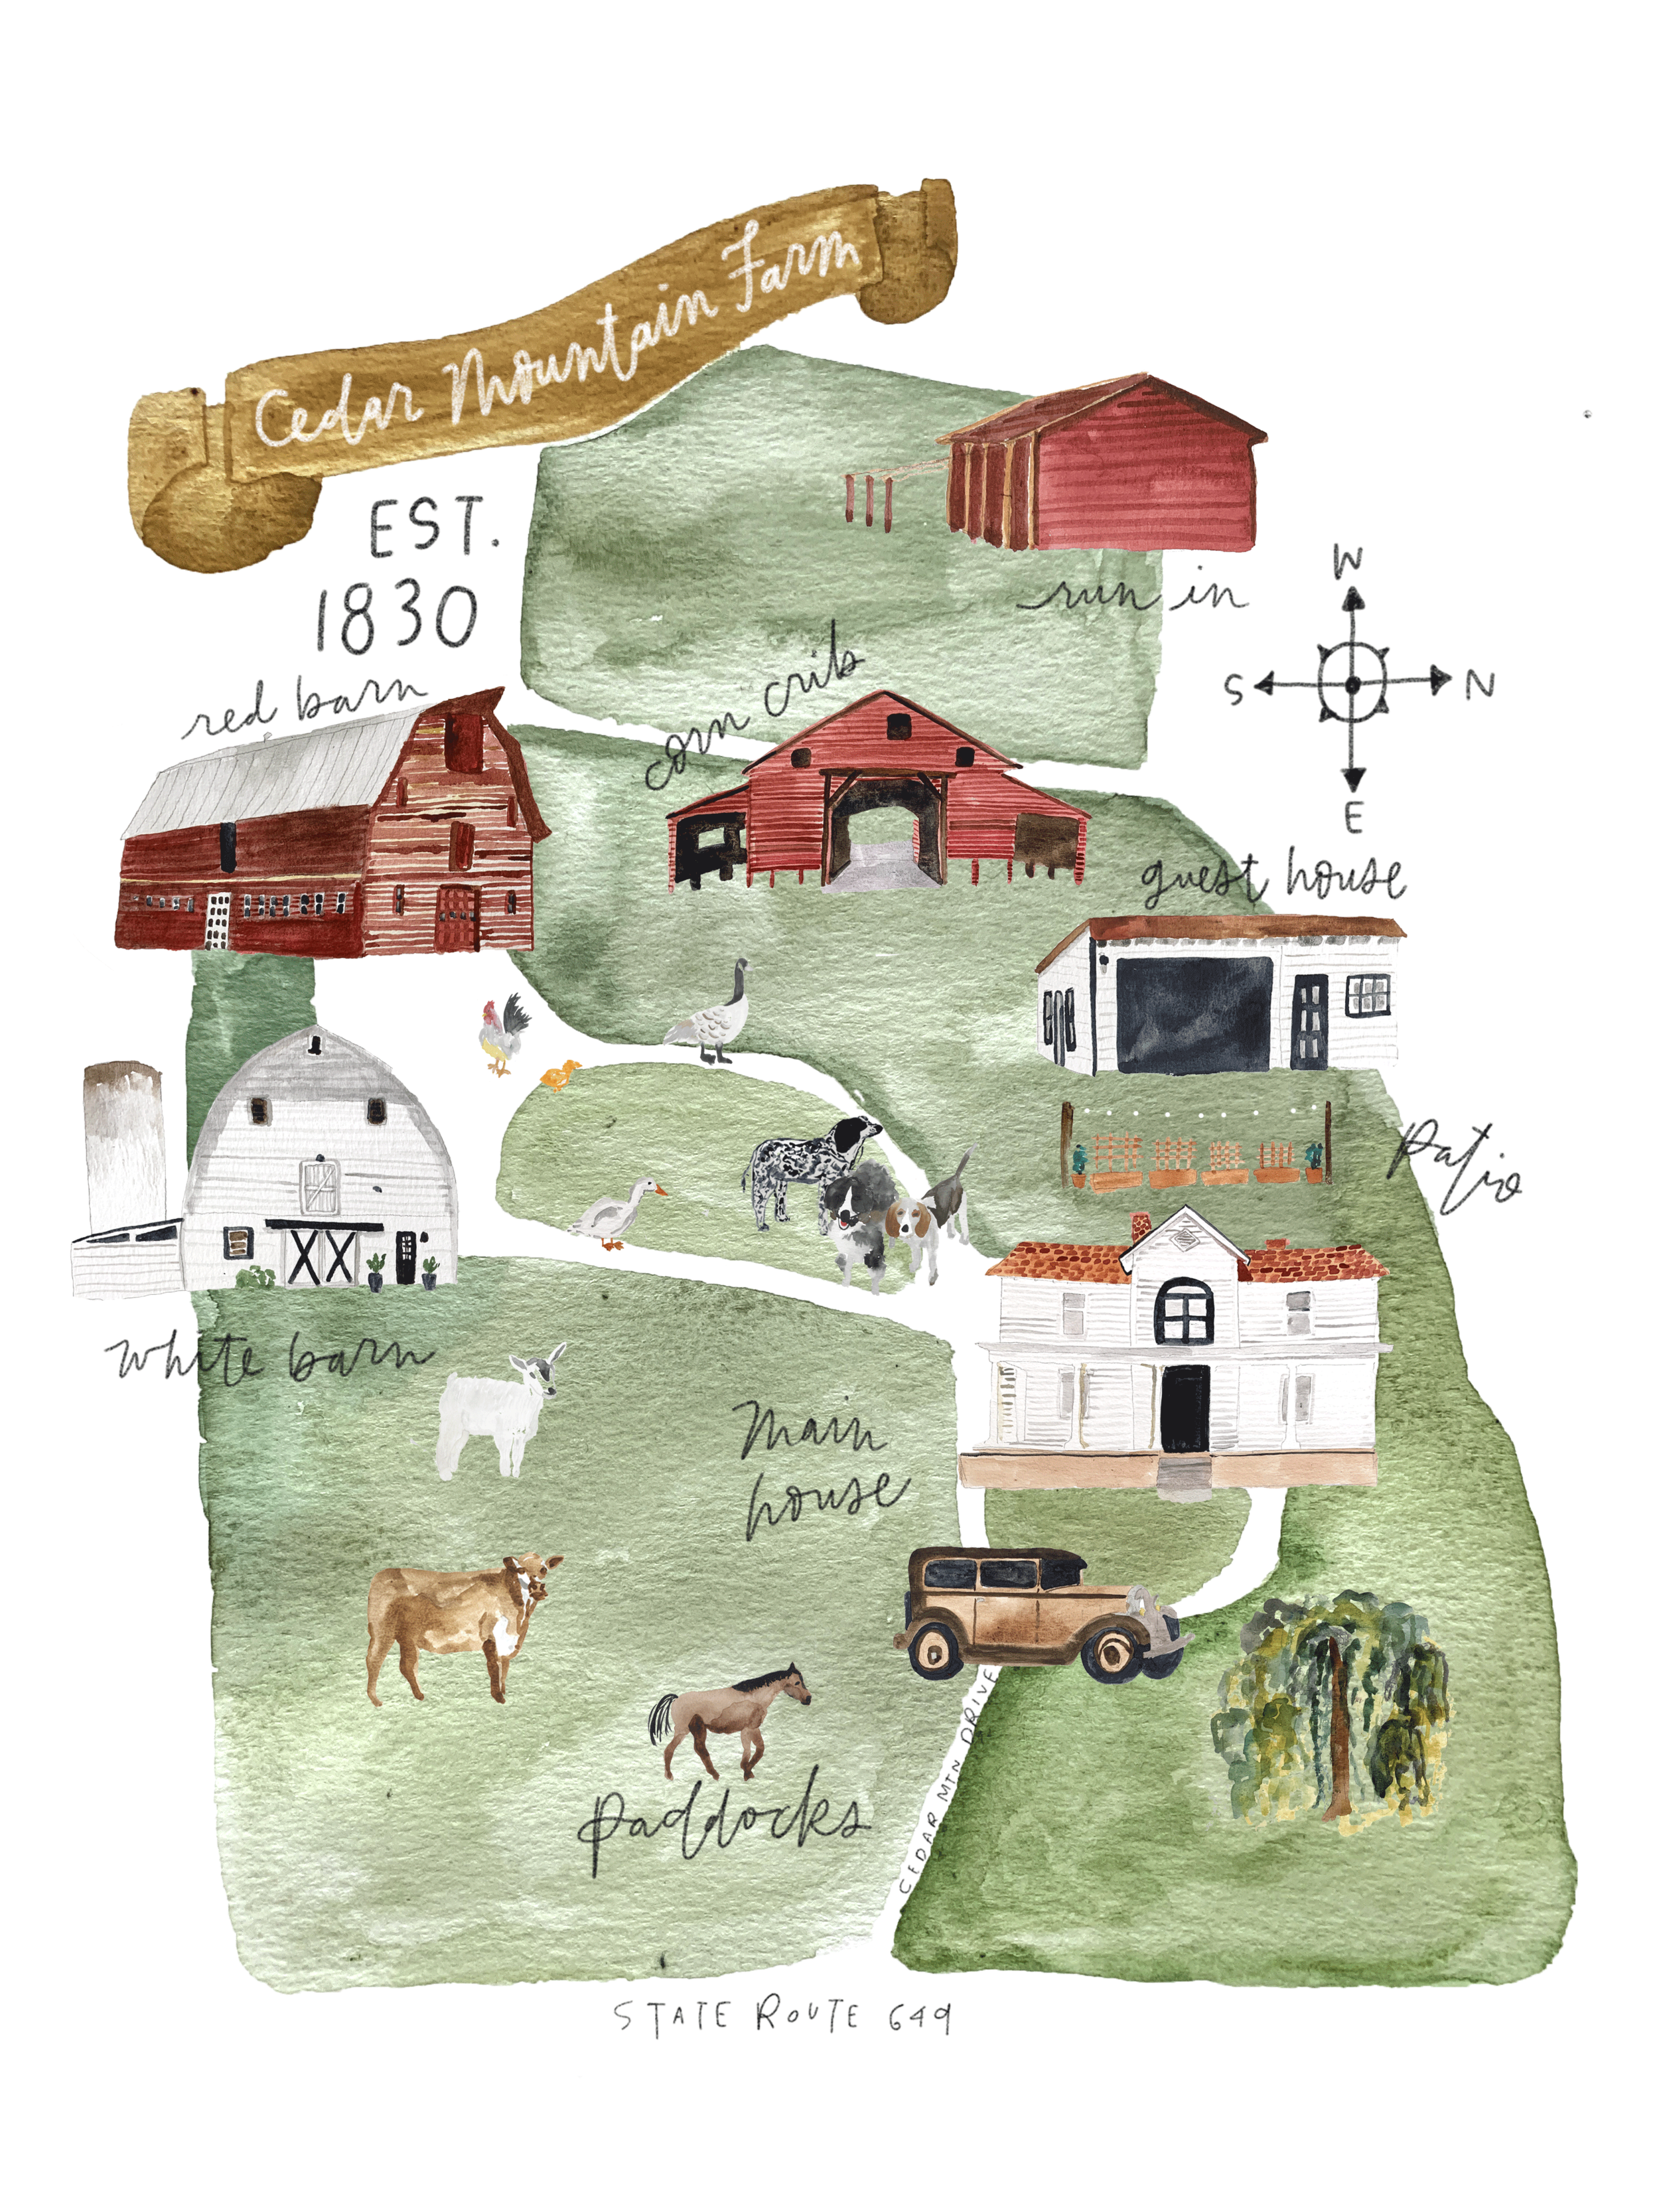 the-farm-at-cedar-mountain-map-edited.png